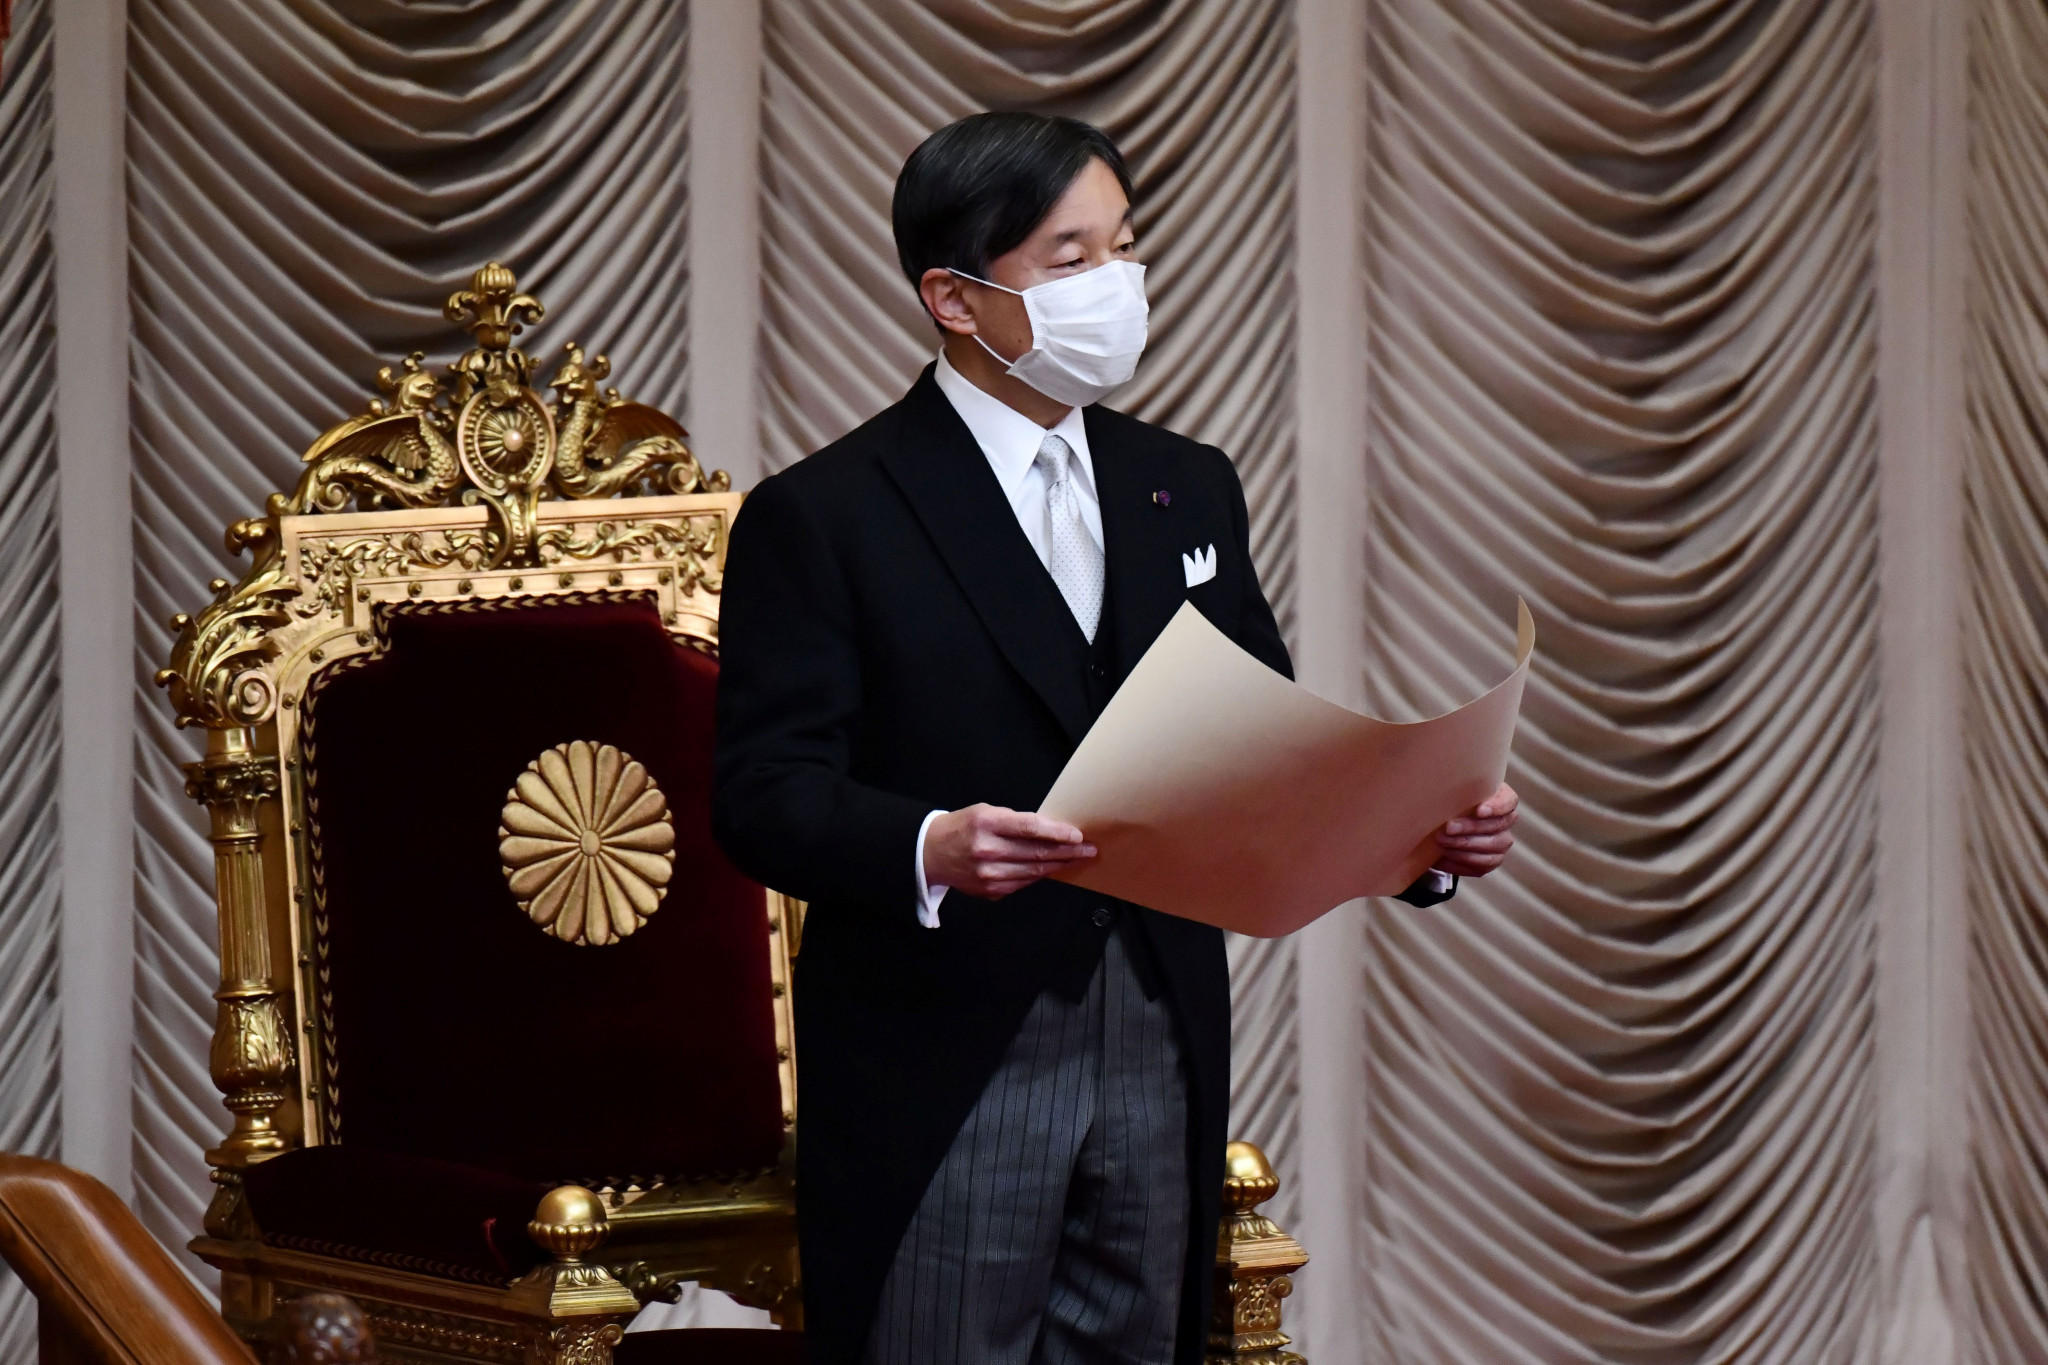 Japanese Emperor Naruhito is due to declare the Olympic Games open - 12 months after it was originally due to start ©Getty Images